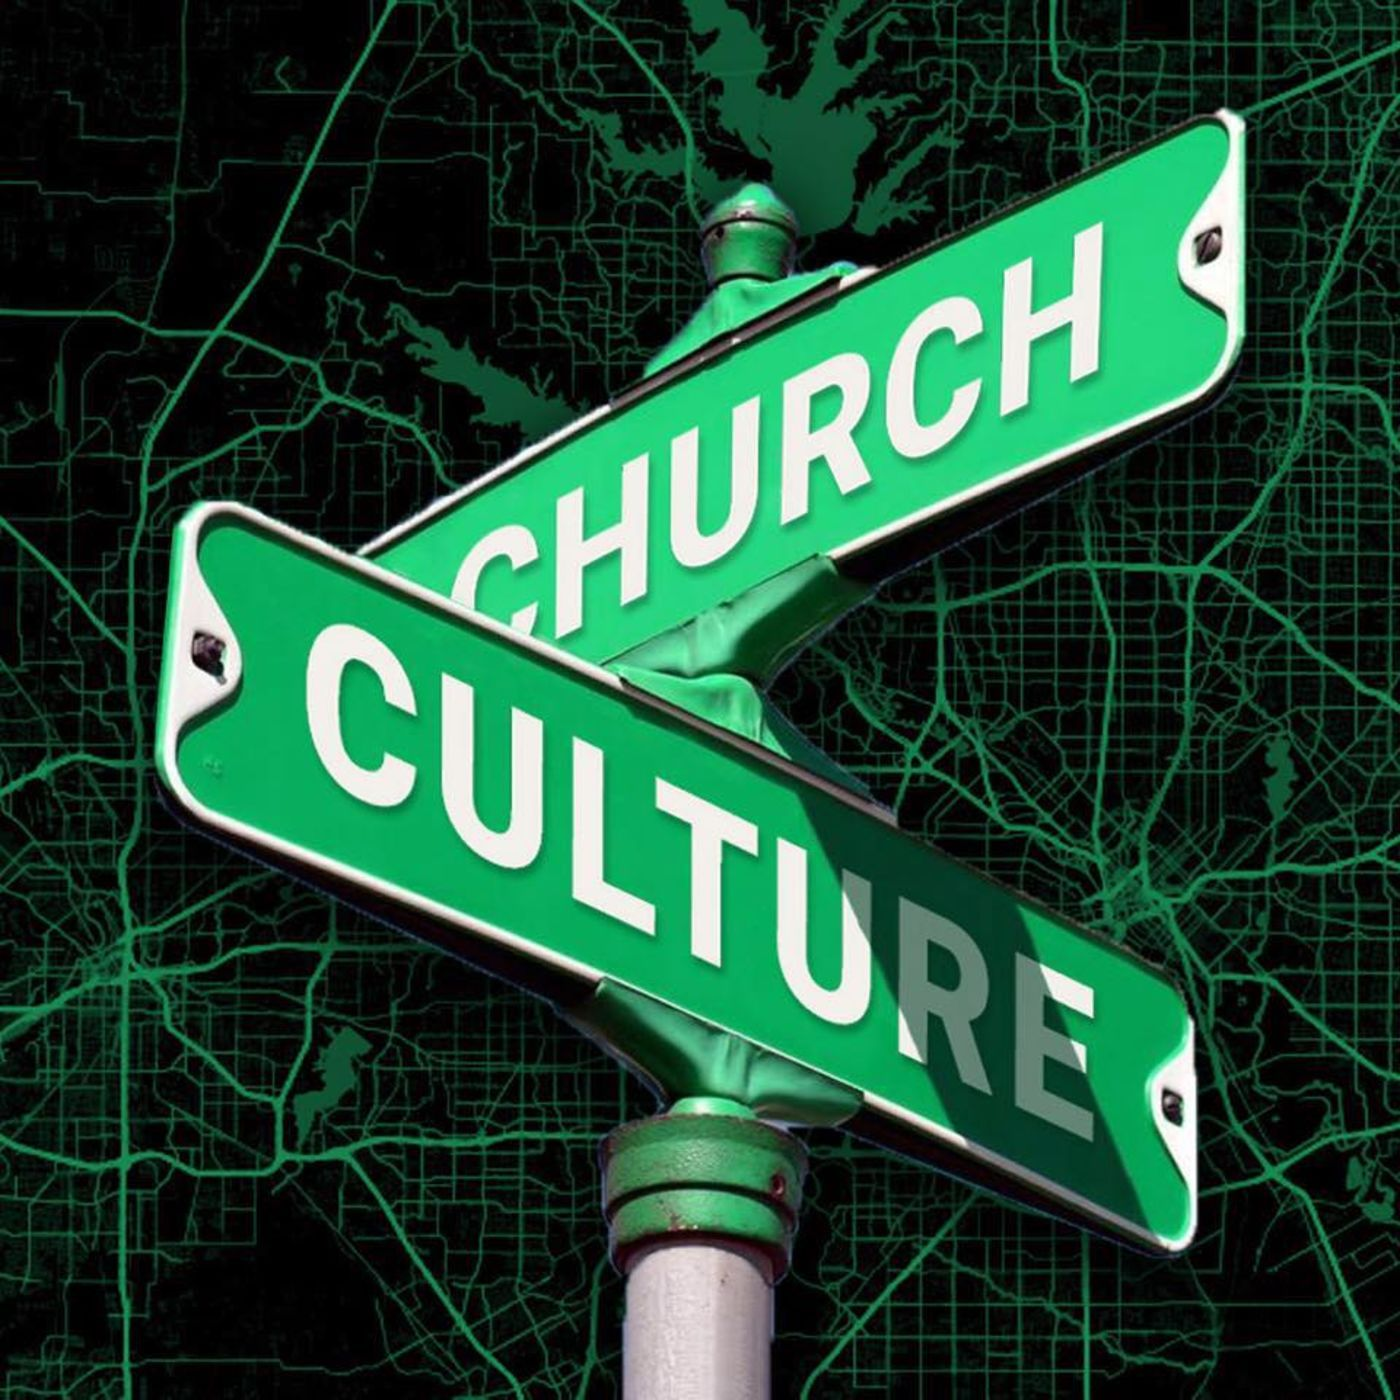 The Church and Culture Pt 2